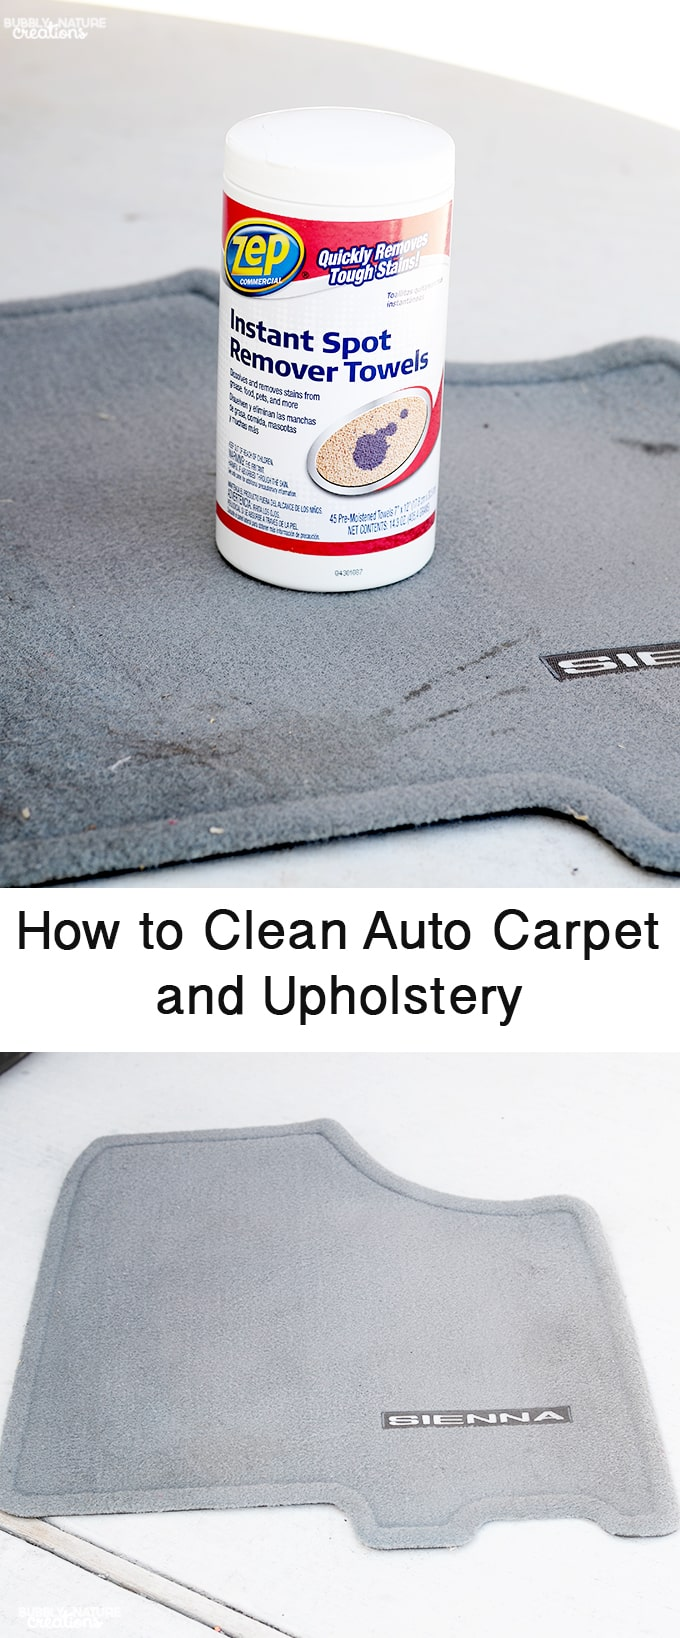 how to clean auto carpet and upholstery quickly and easily sprinkle some fun. Black Bedroom Furniture Sets. Home Design Ideas